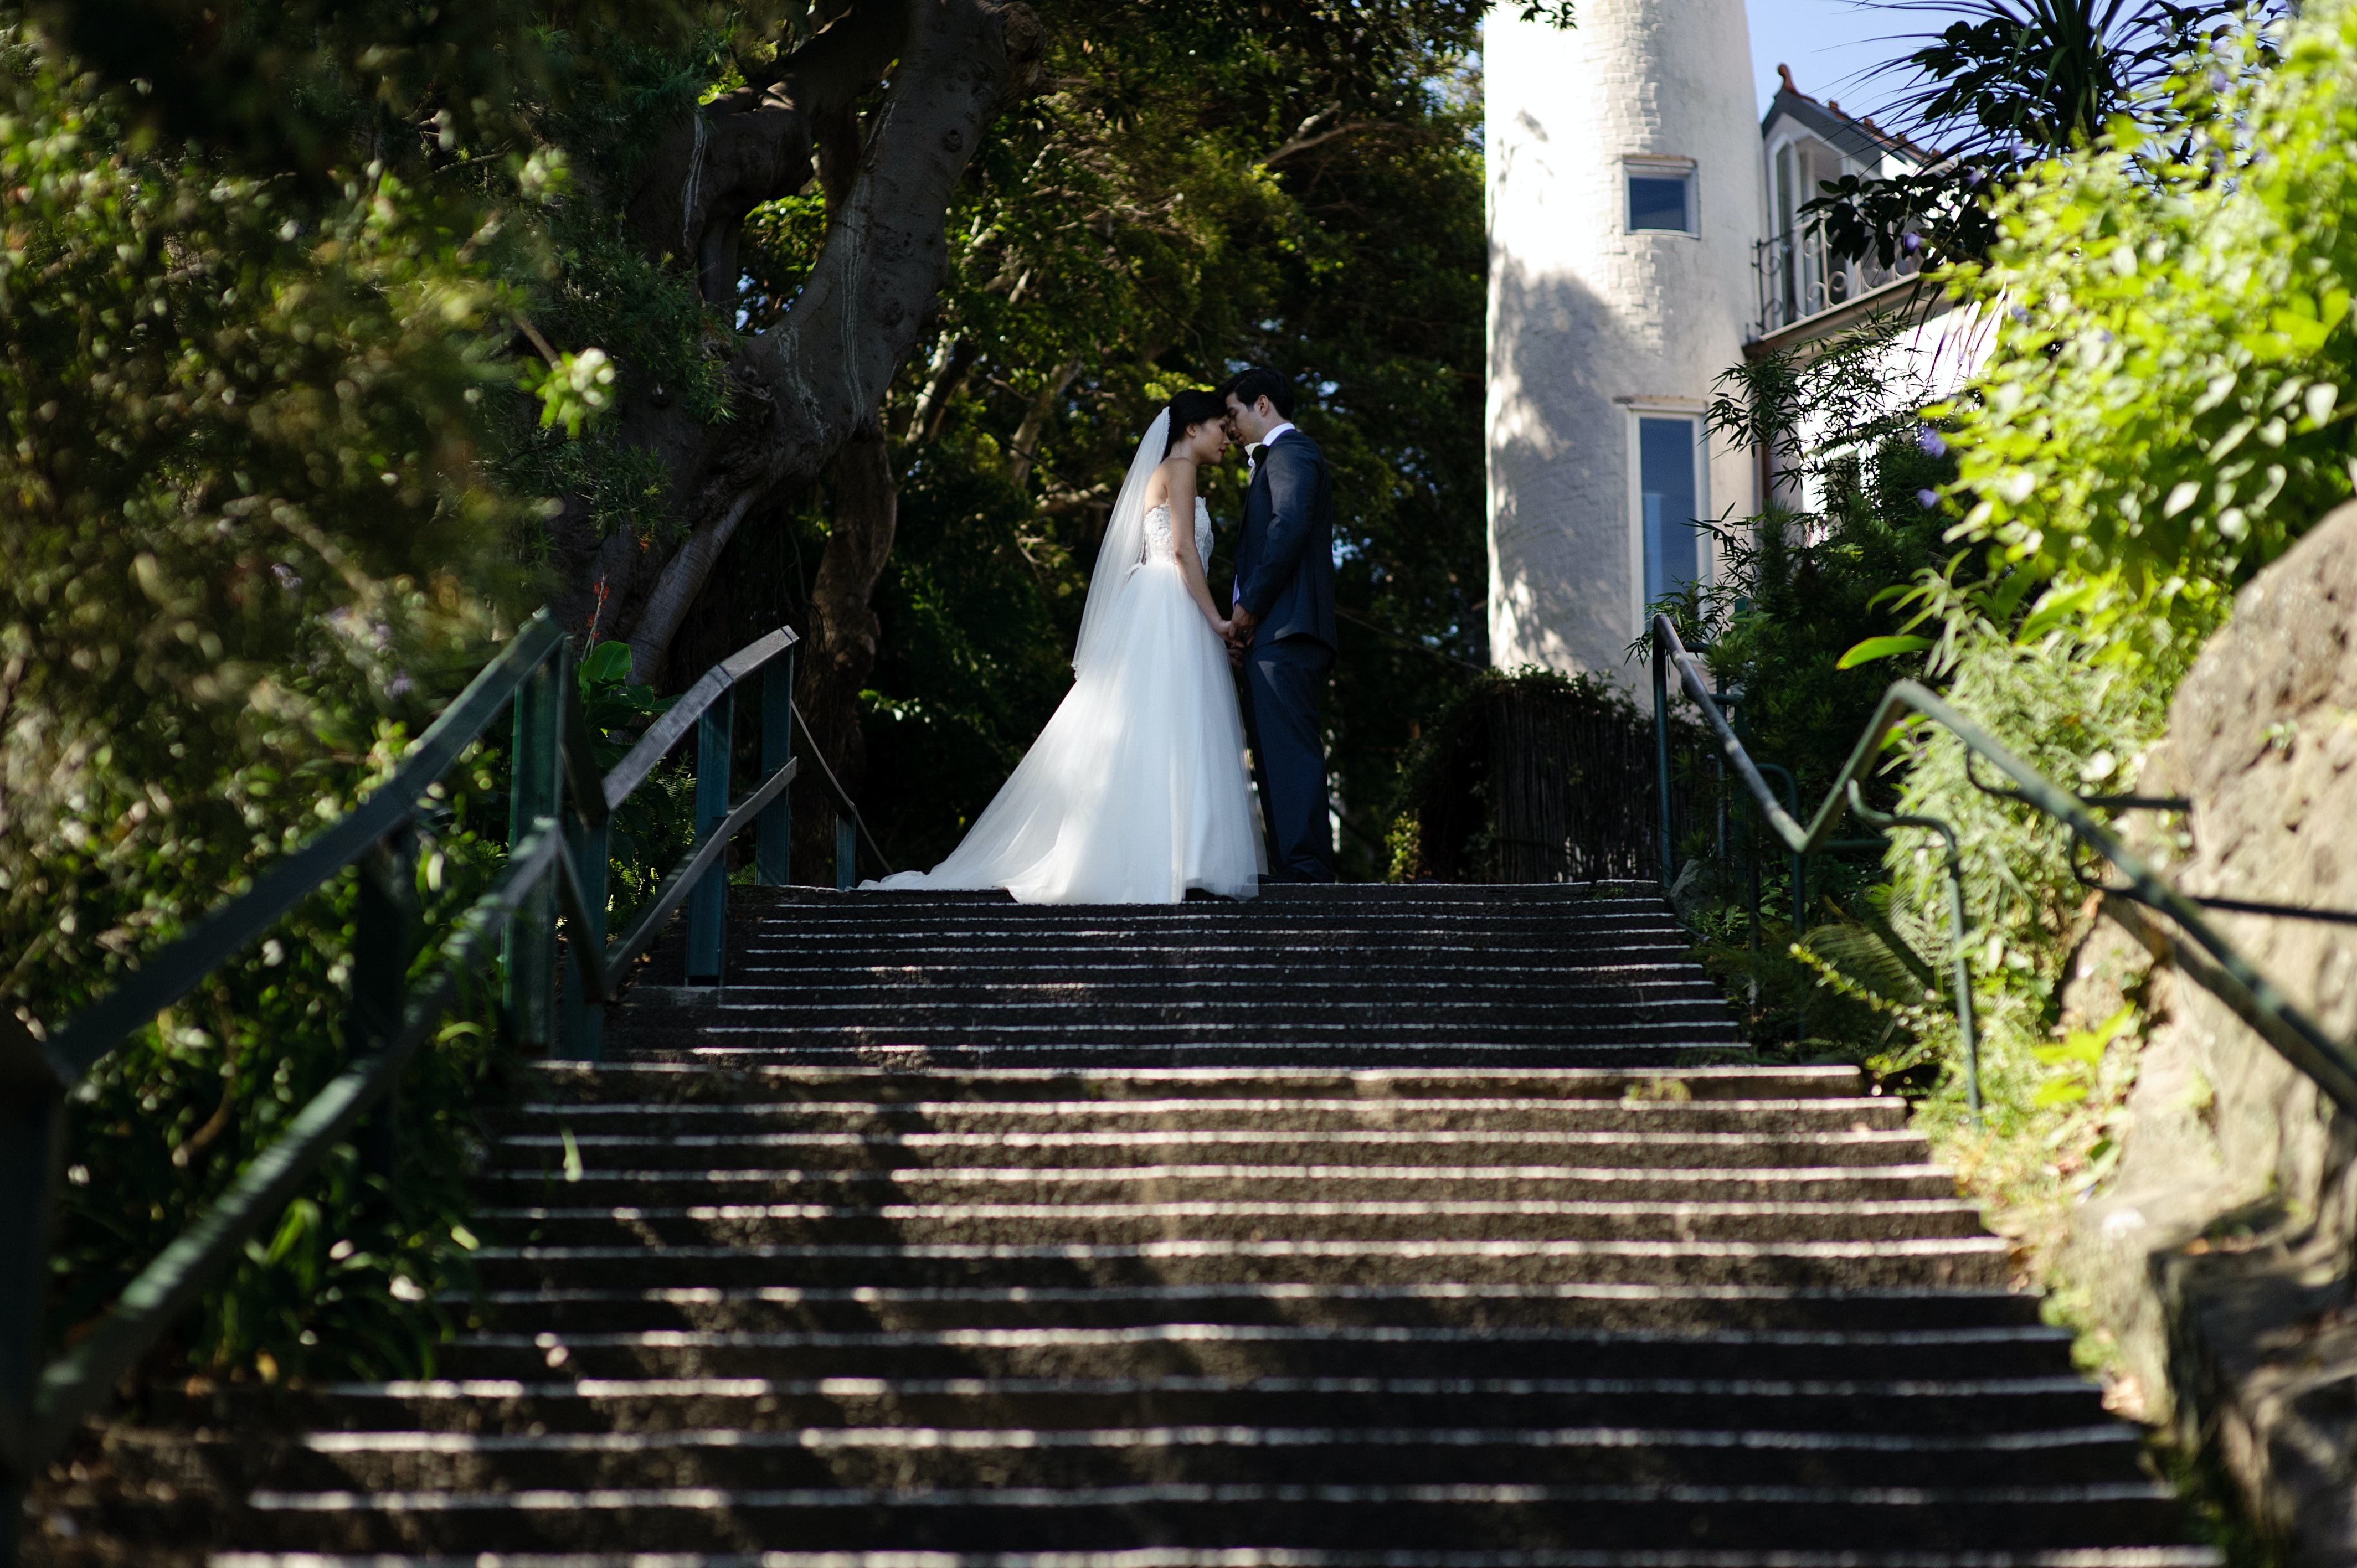 A newlywed couple sharing an intimate moment atop a flight of stairs at Gold Coast